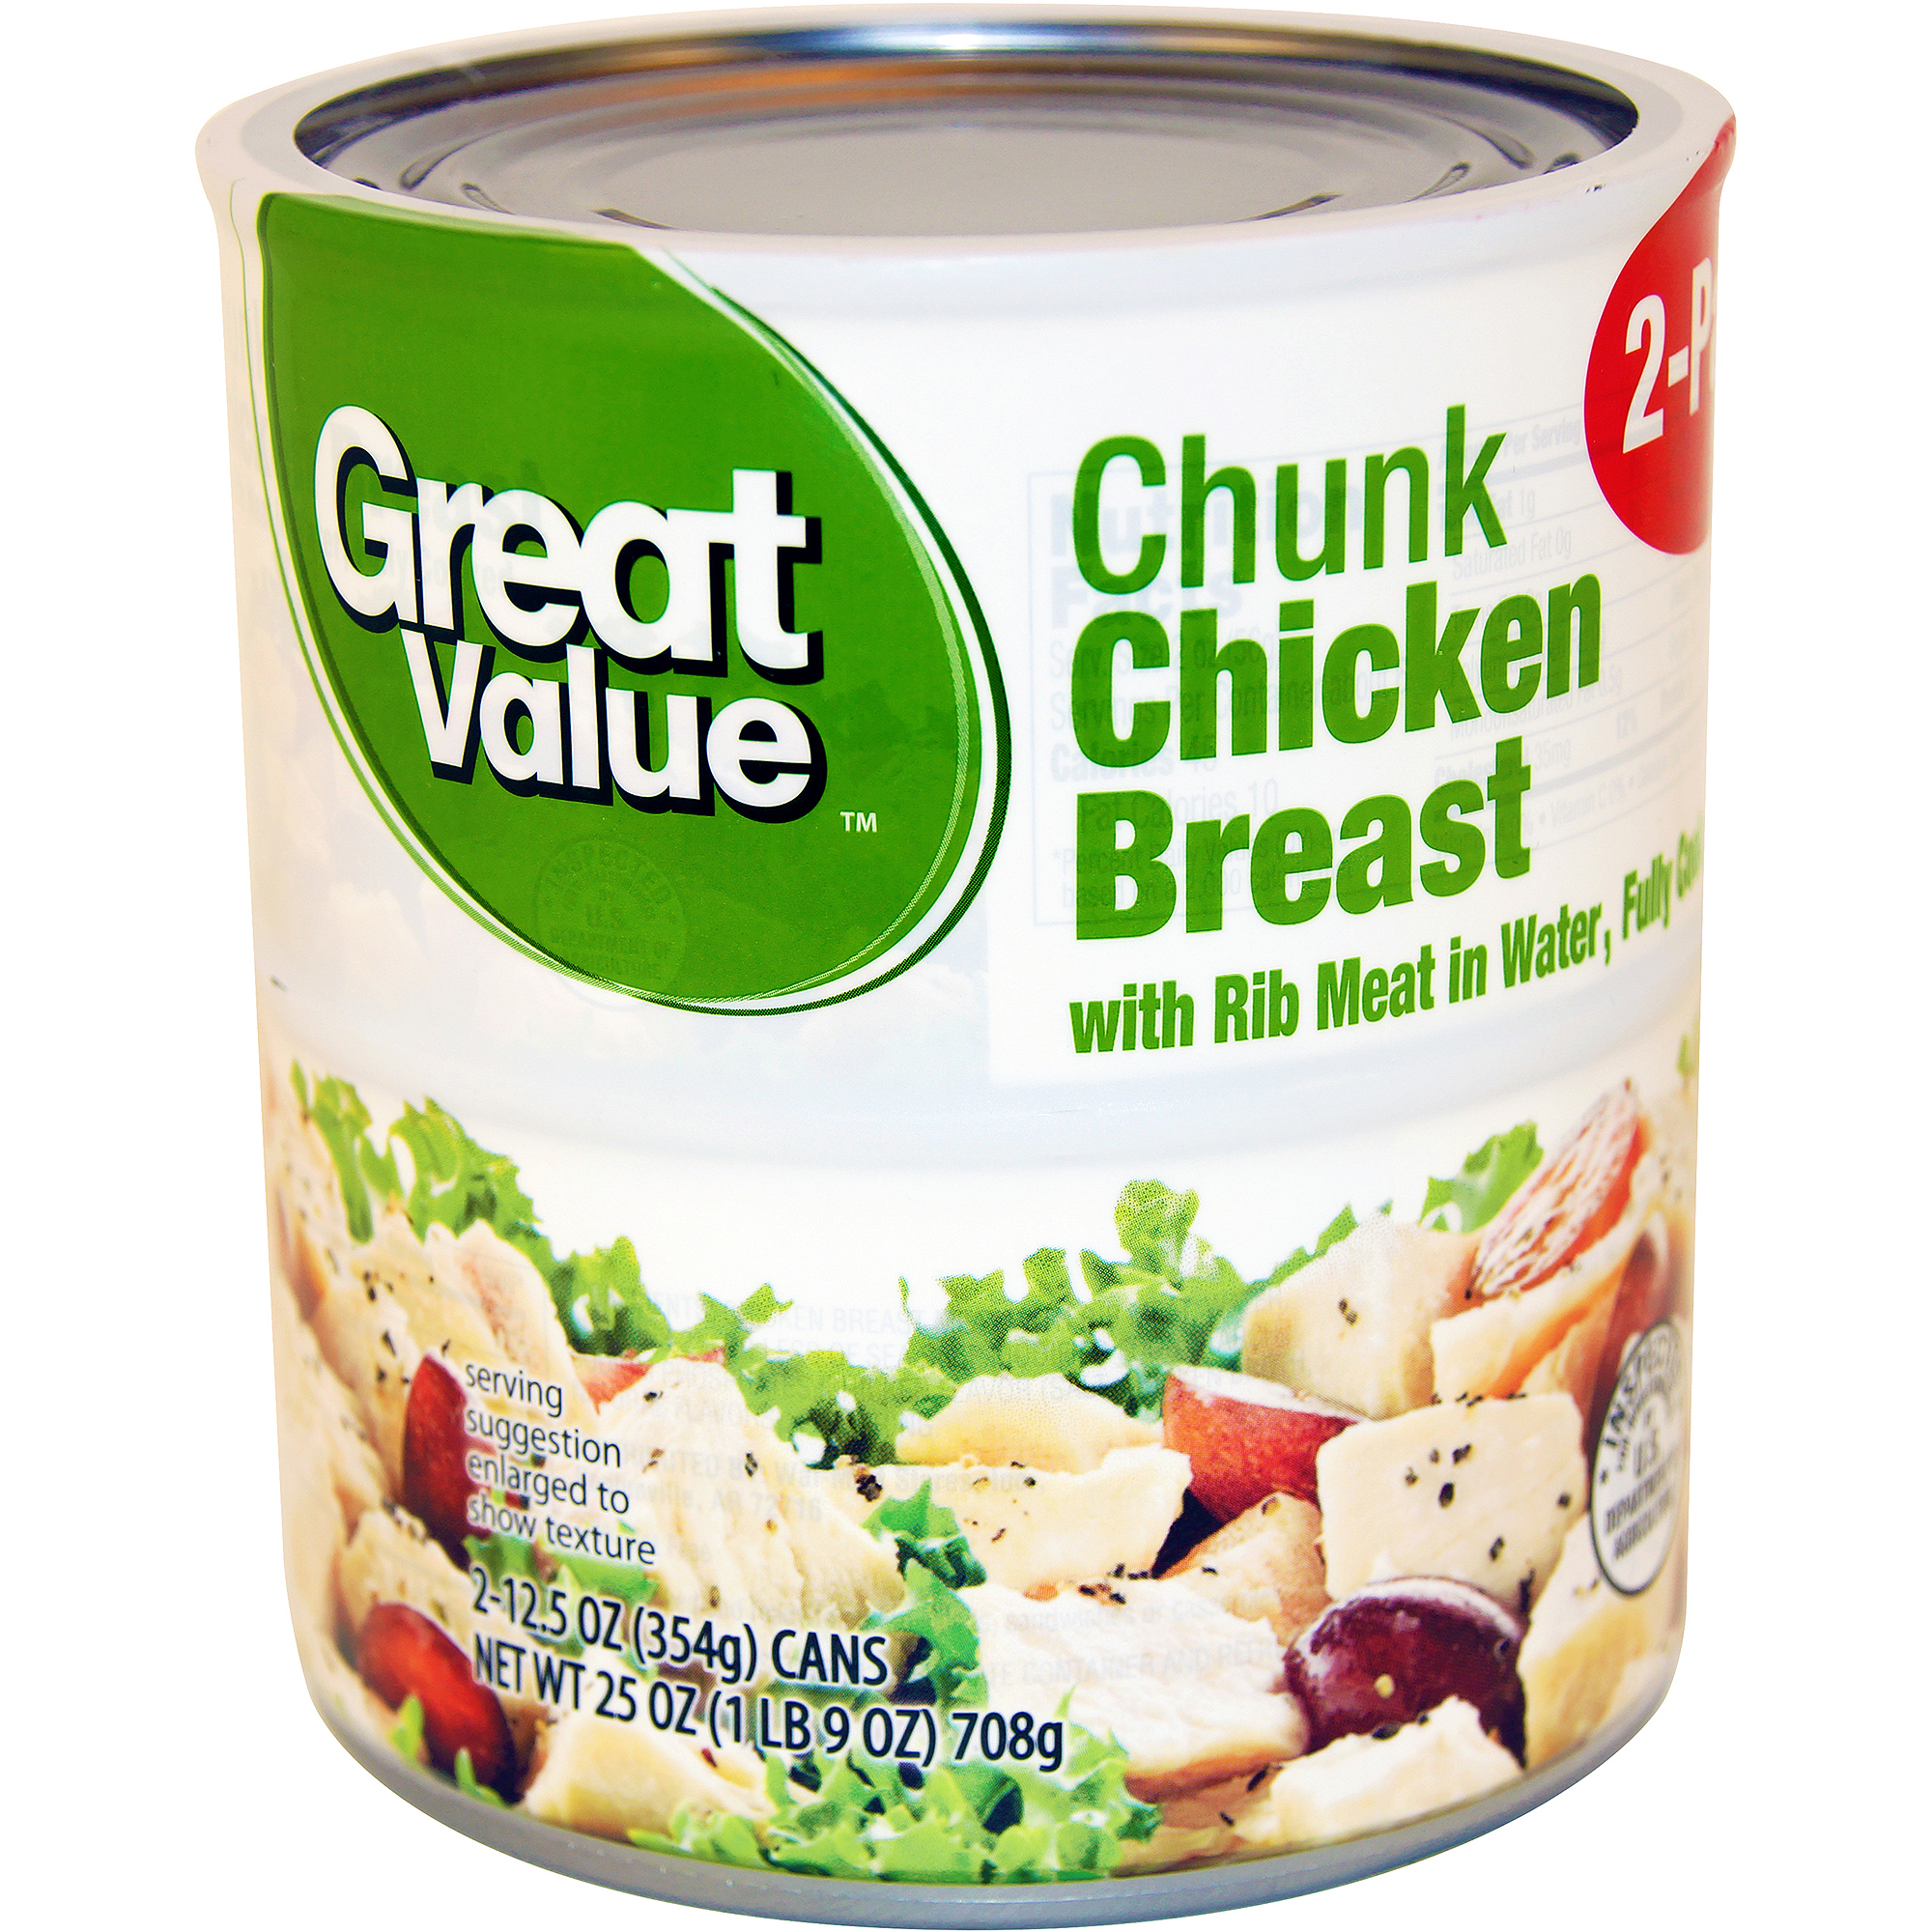 Great Value Chunk Chicken Breast, 12.5 oz, 2 count